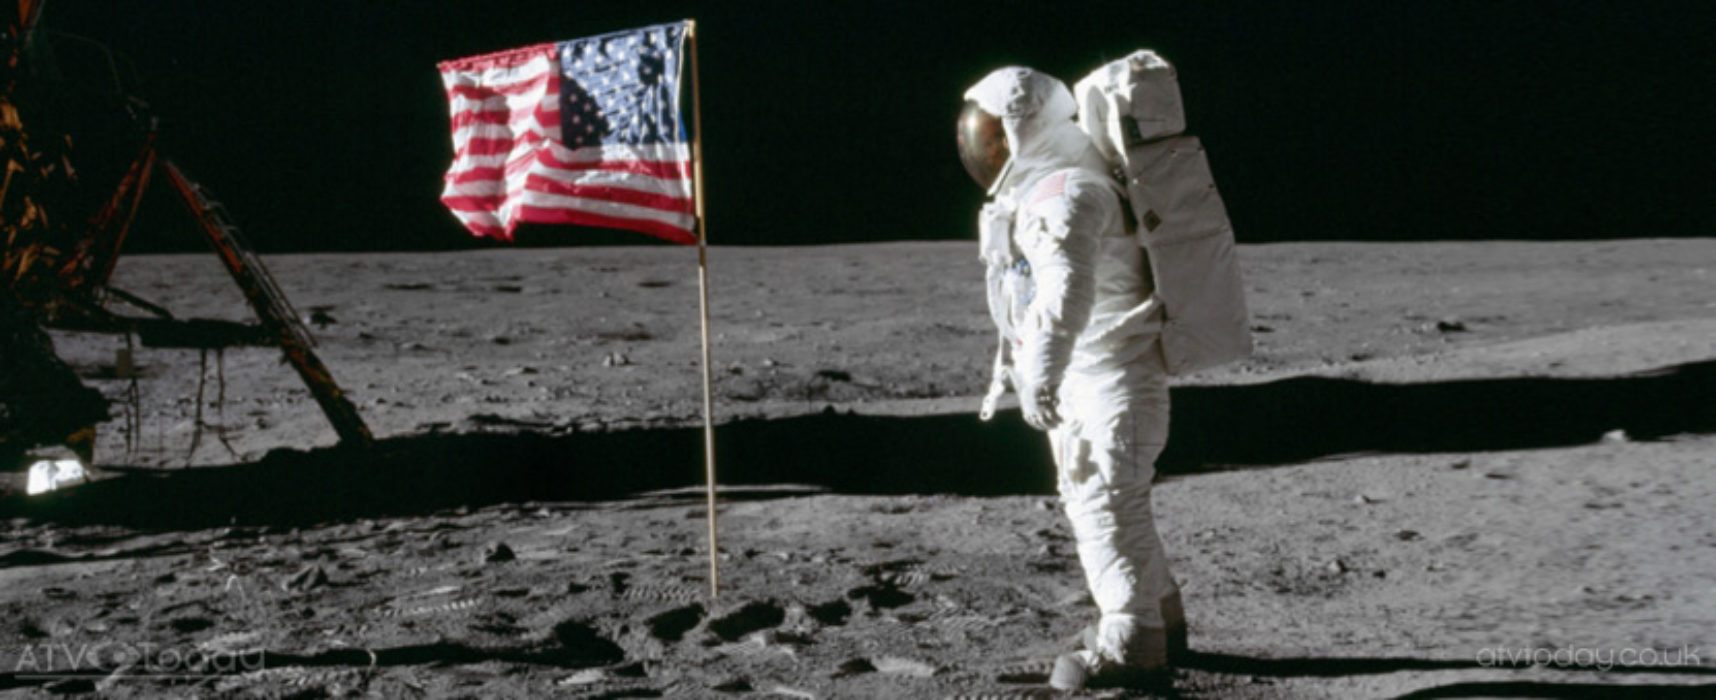 ITV Celebrates 40th Anniversary of Moon Landing